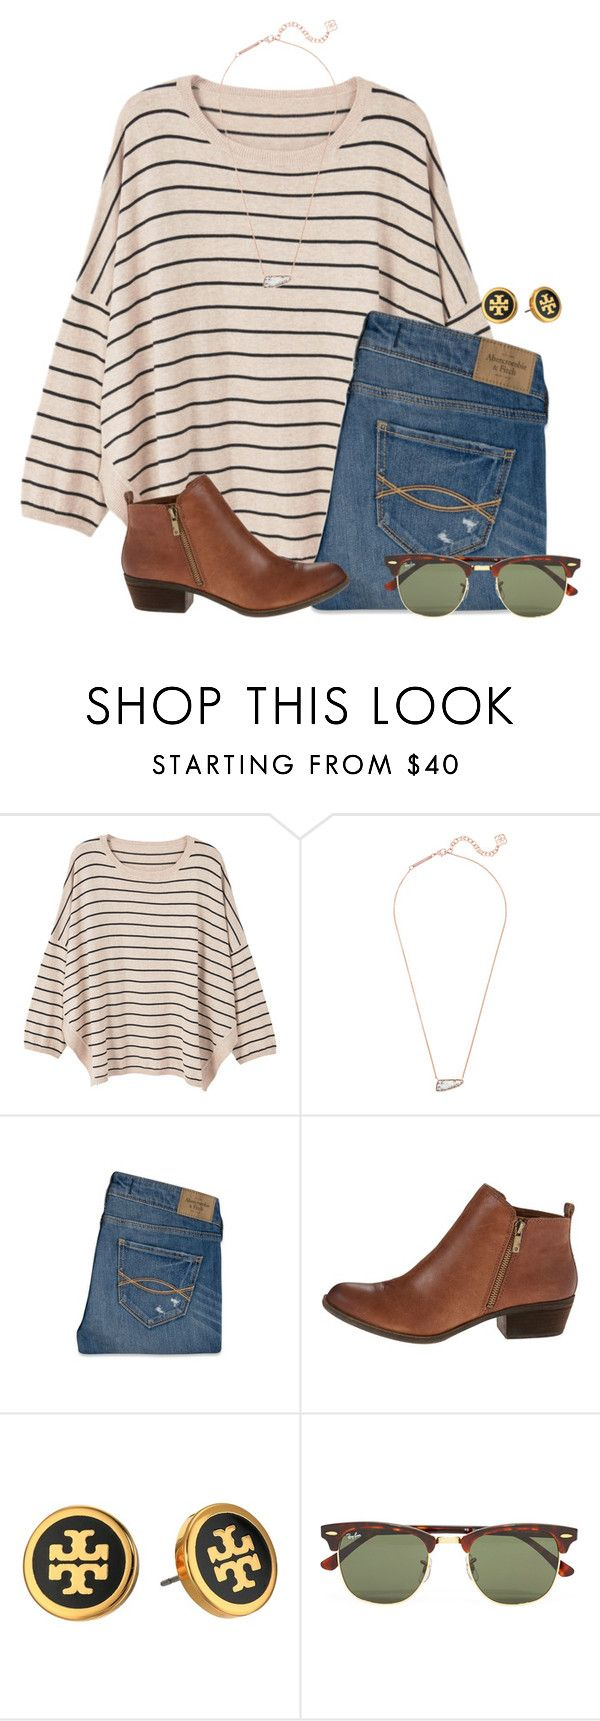 """We're snuggled up together like to birds of a feather would be"" by flroasburn ❤ liked on Polyvore featuring MANGO, Kendra Scott, Abercrombie & Fitch, Lucky Brand, Tory Burch and Ray-Ban"